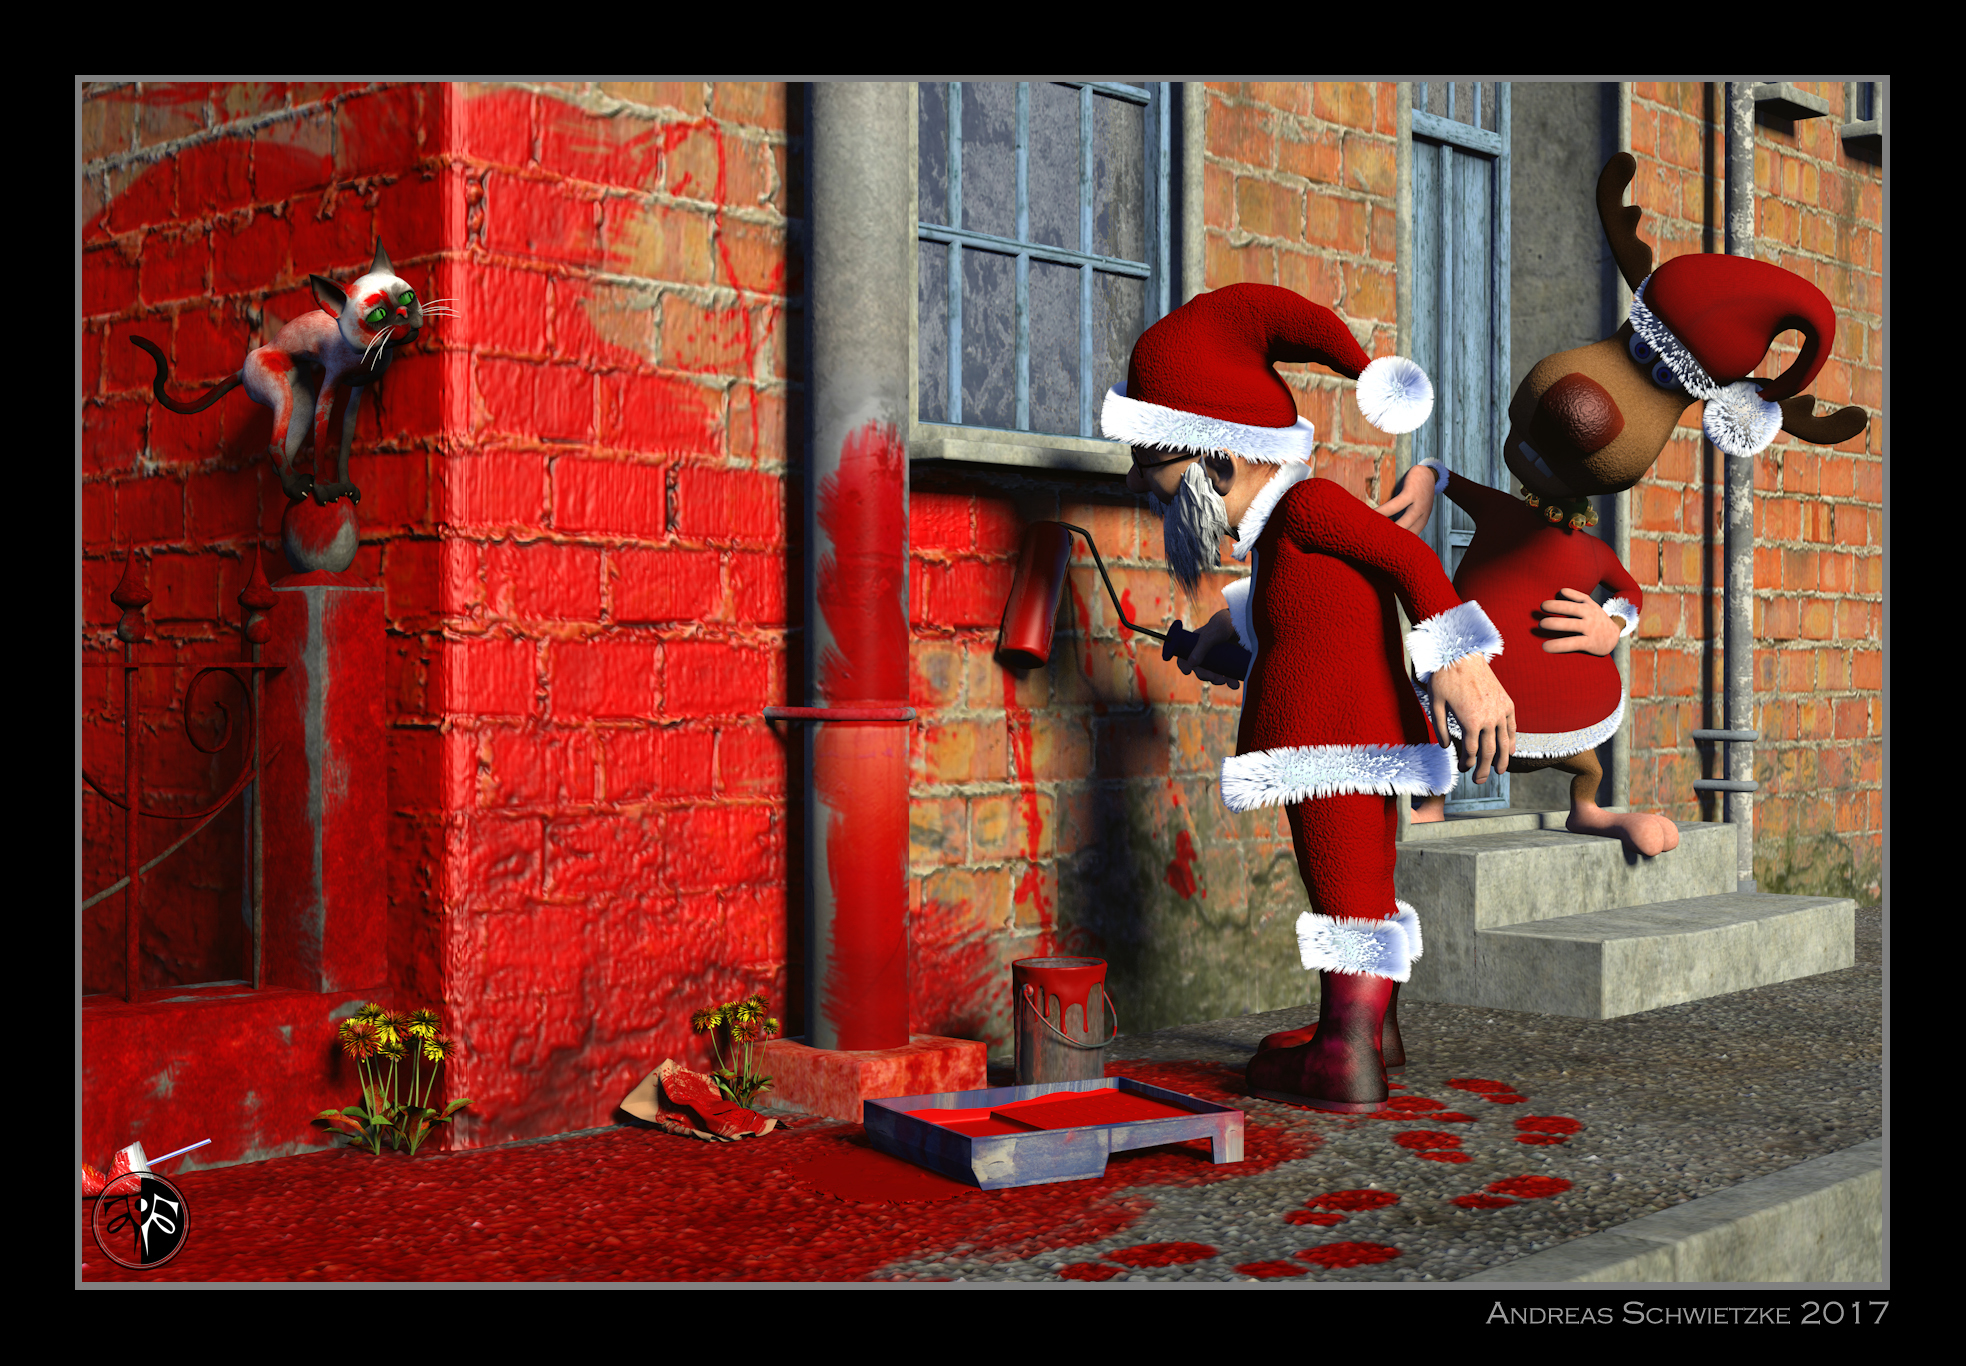 Santa Claus in the intoxication of colors